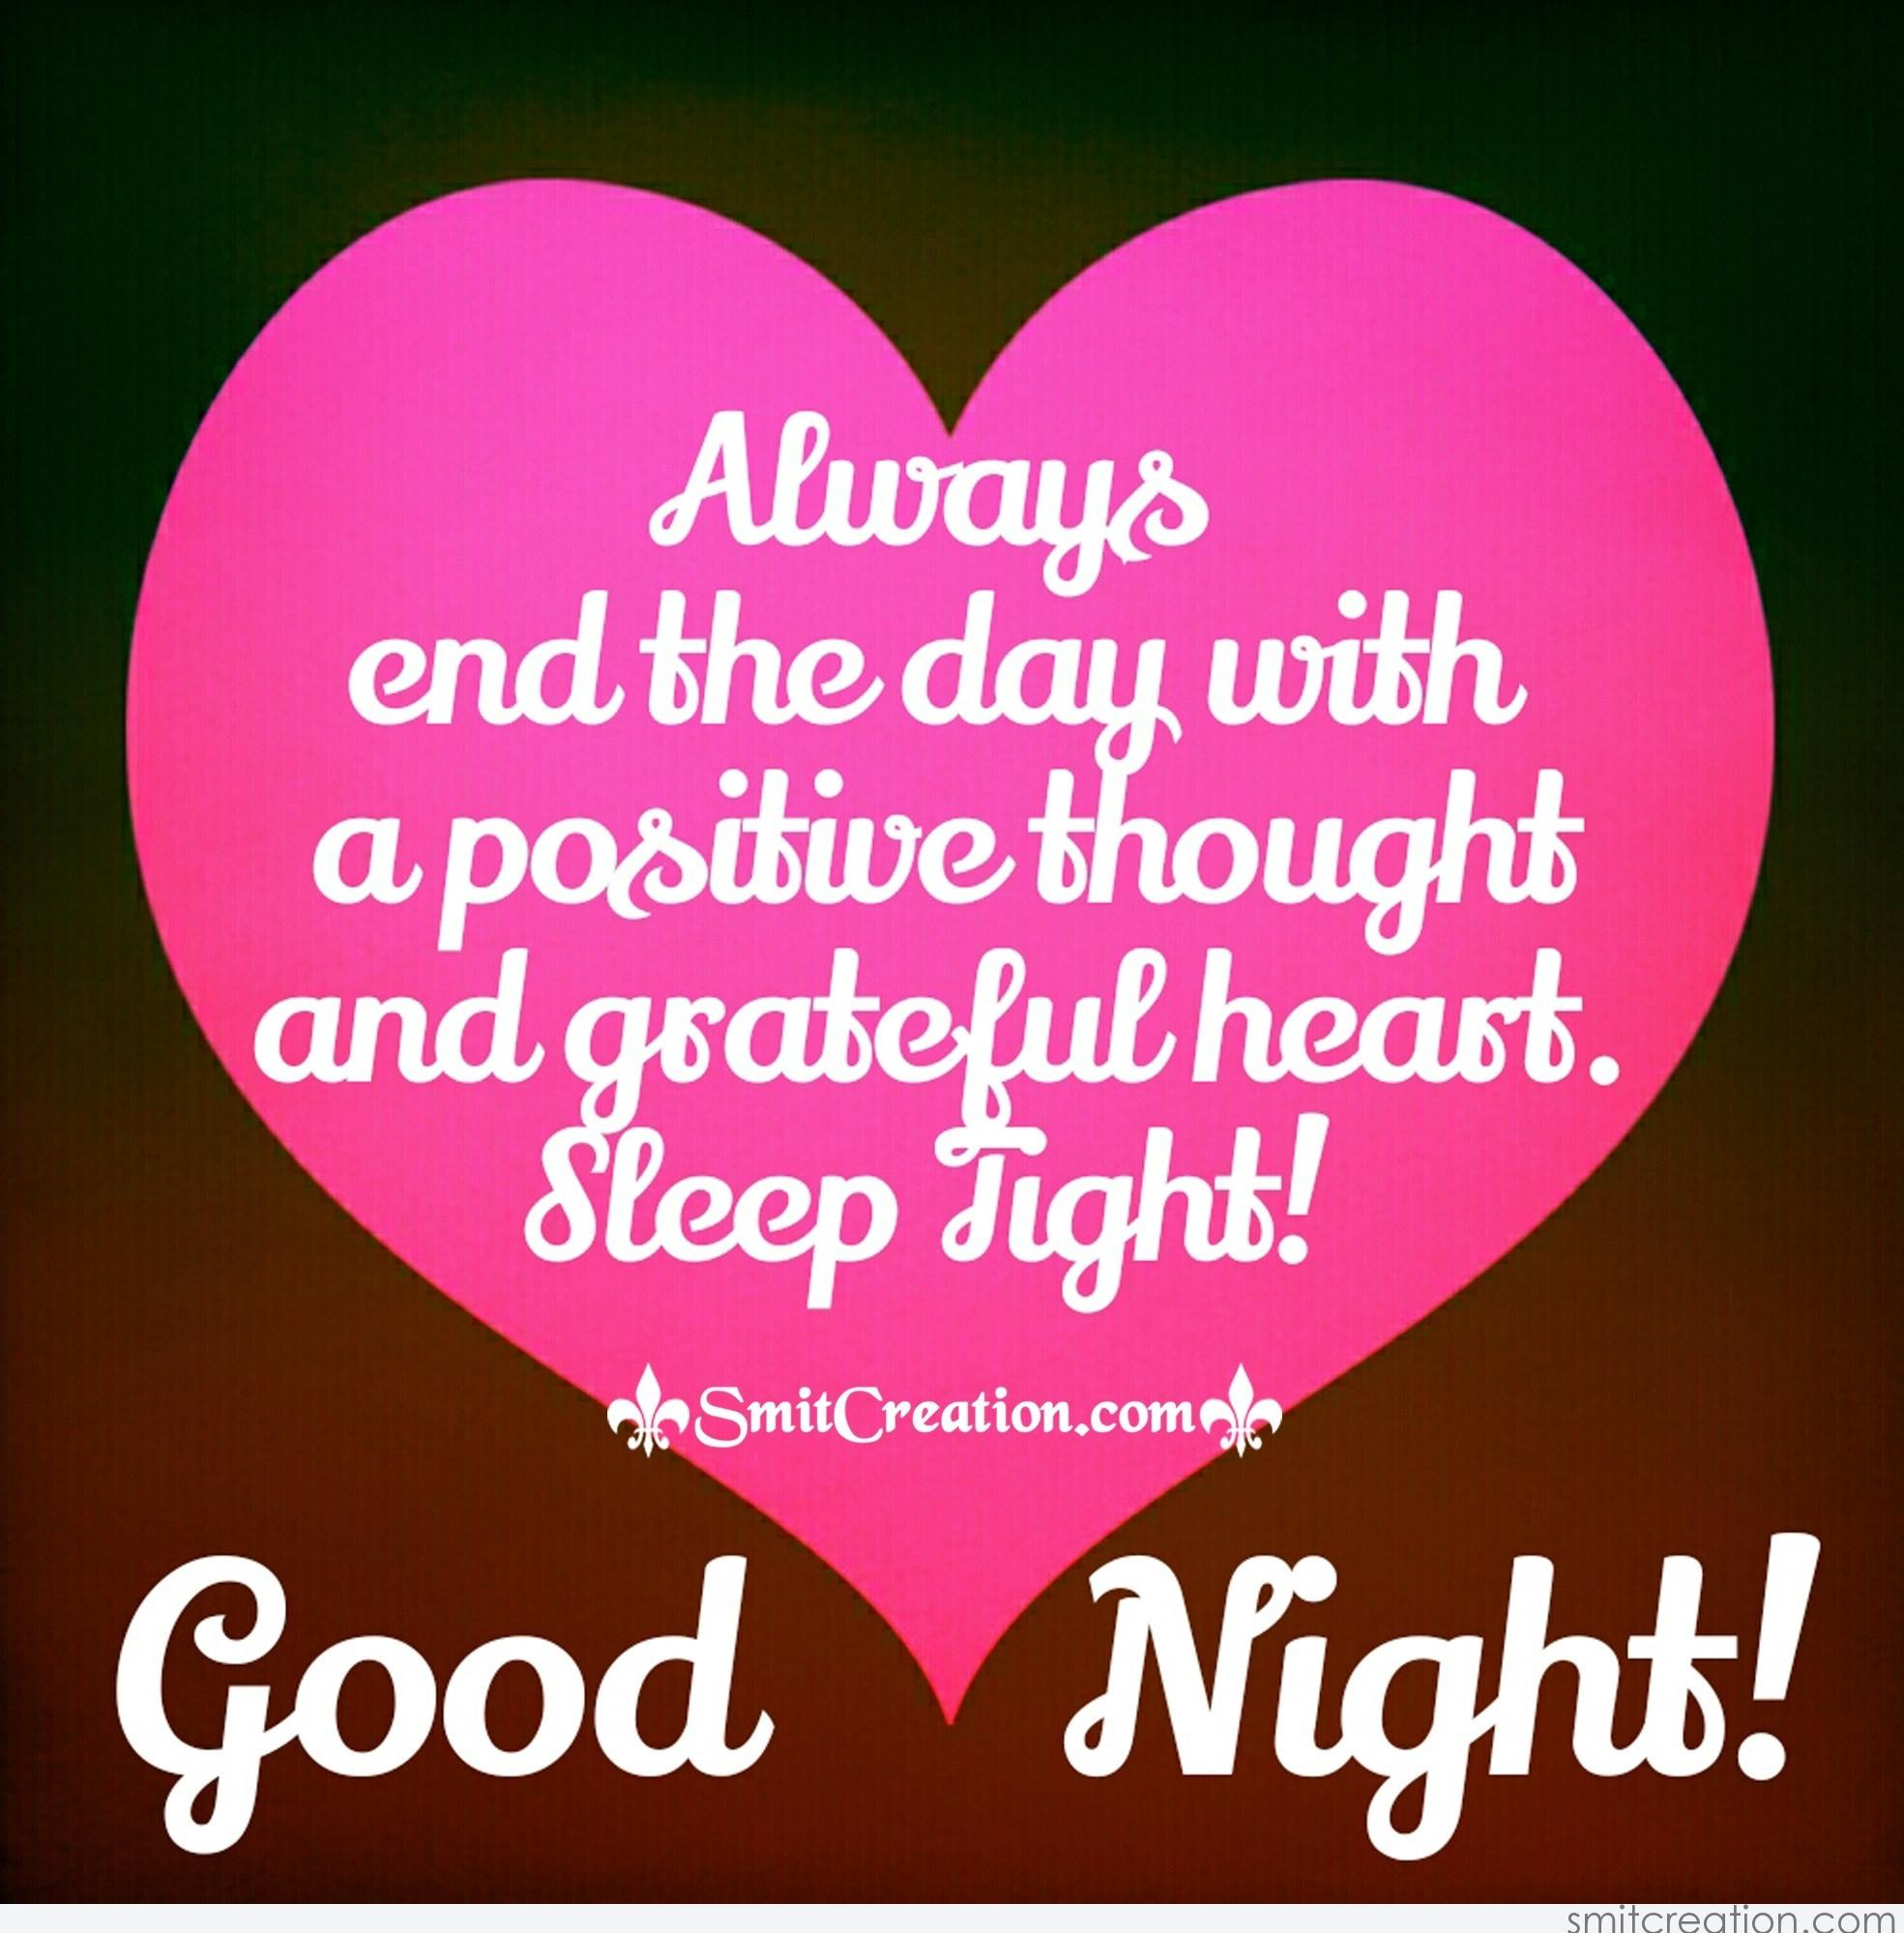 Good Night Inspirational Quotes Pictures And Graphics Smitcreationcom